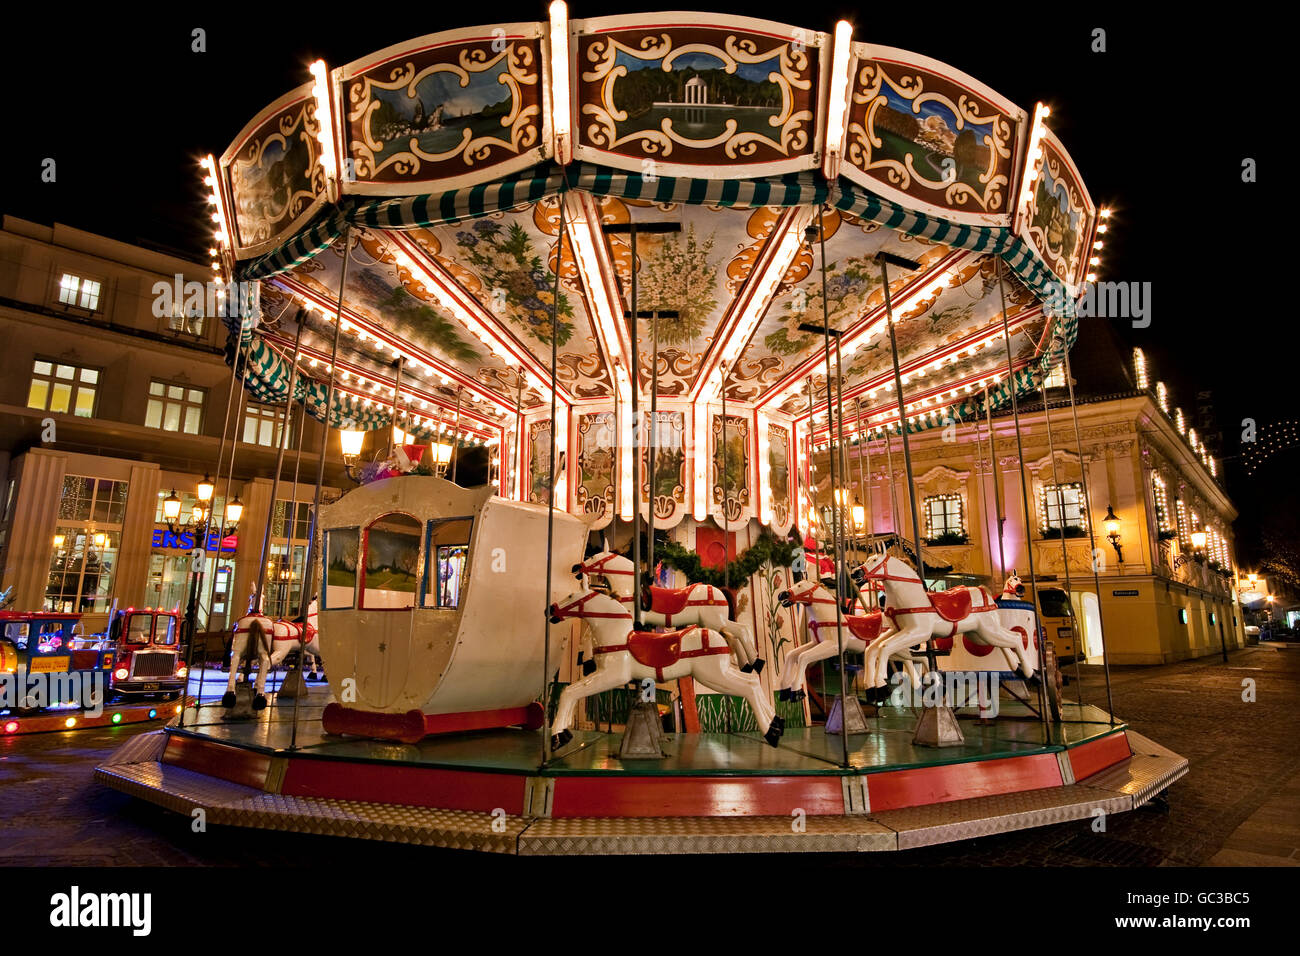 Merry-go-round at Christmastime - Stock Image